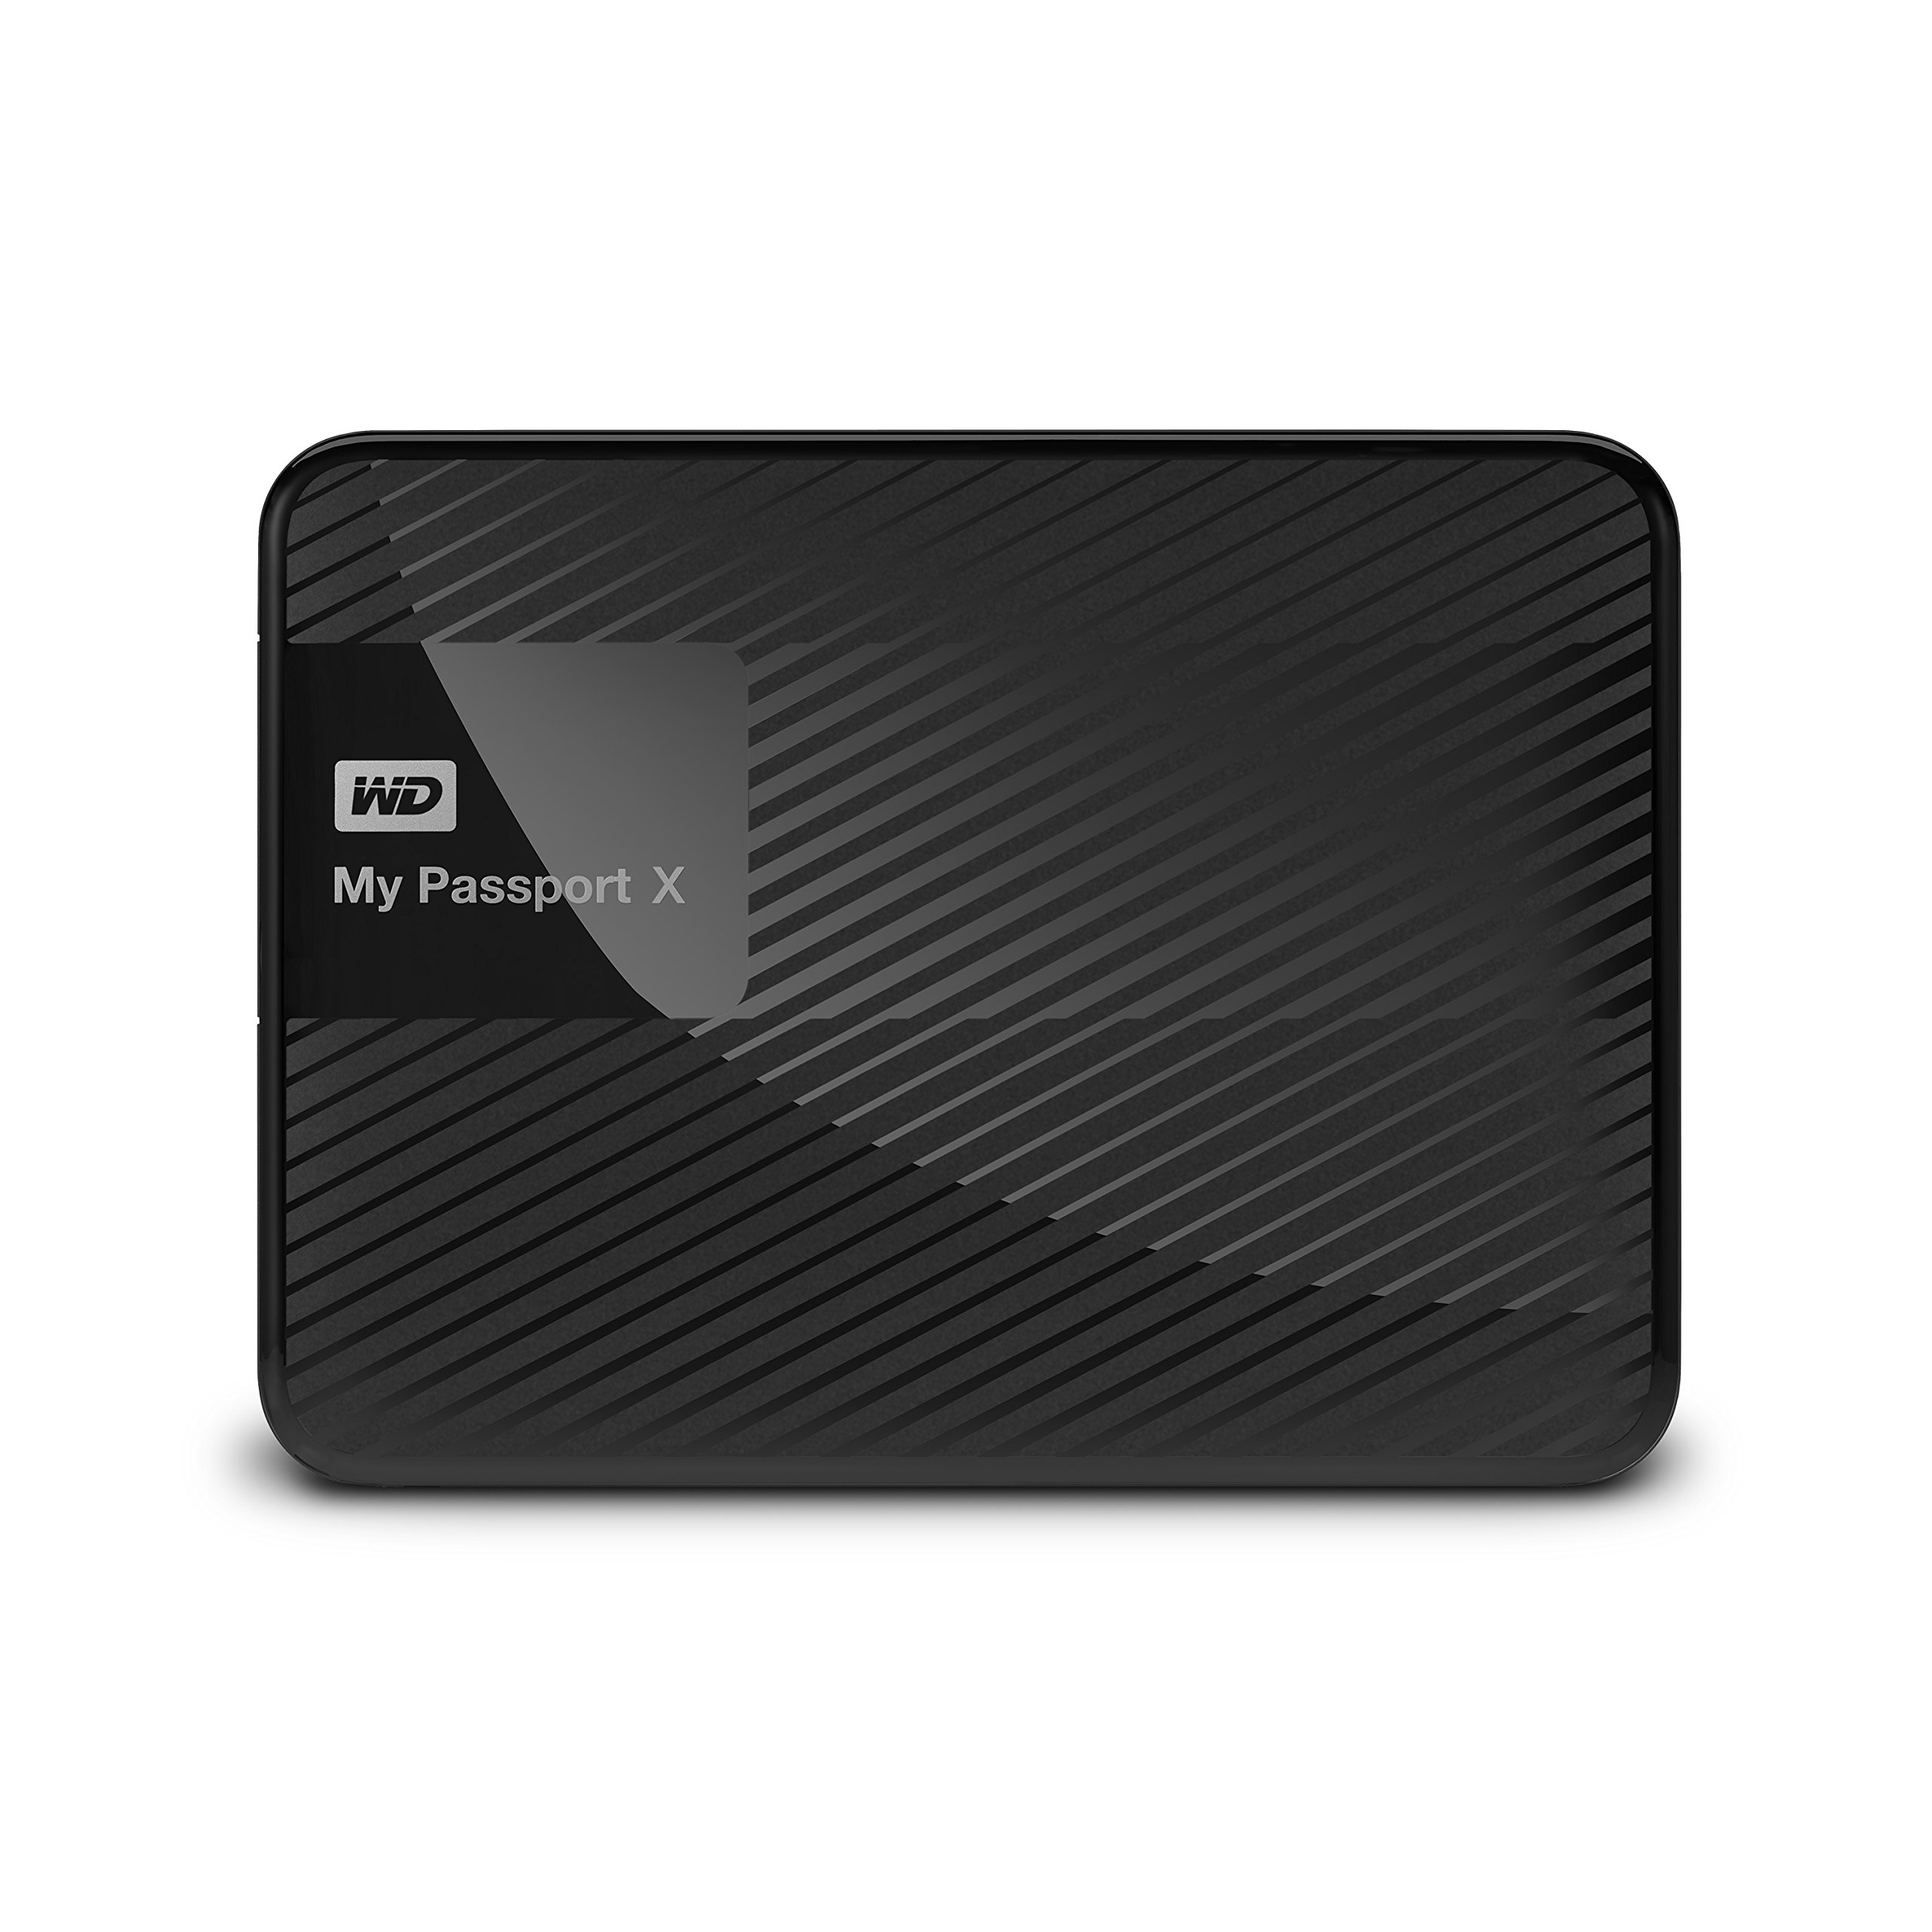 WD 3TB My Passport X for Xbox One Portable External Hard Drive, USB 3.0 - WDBCRM0030BBK-NESN